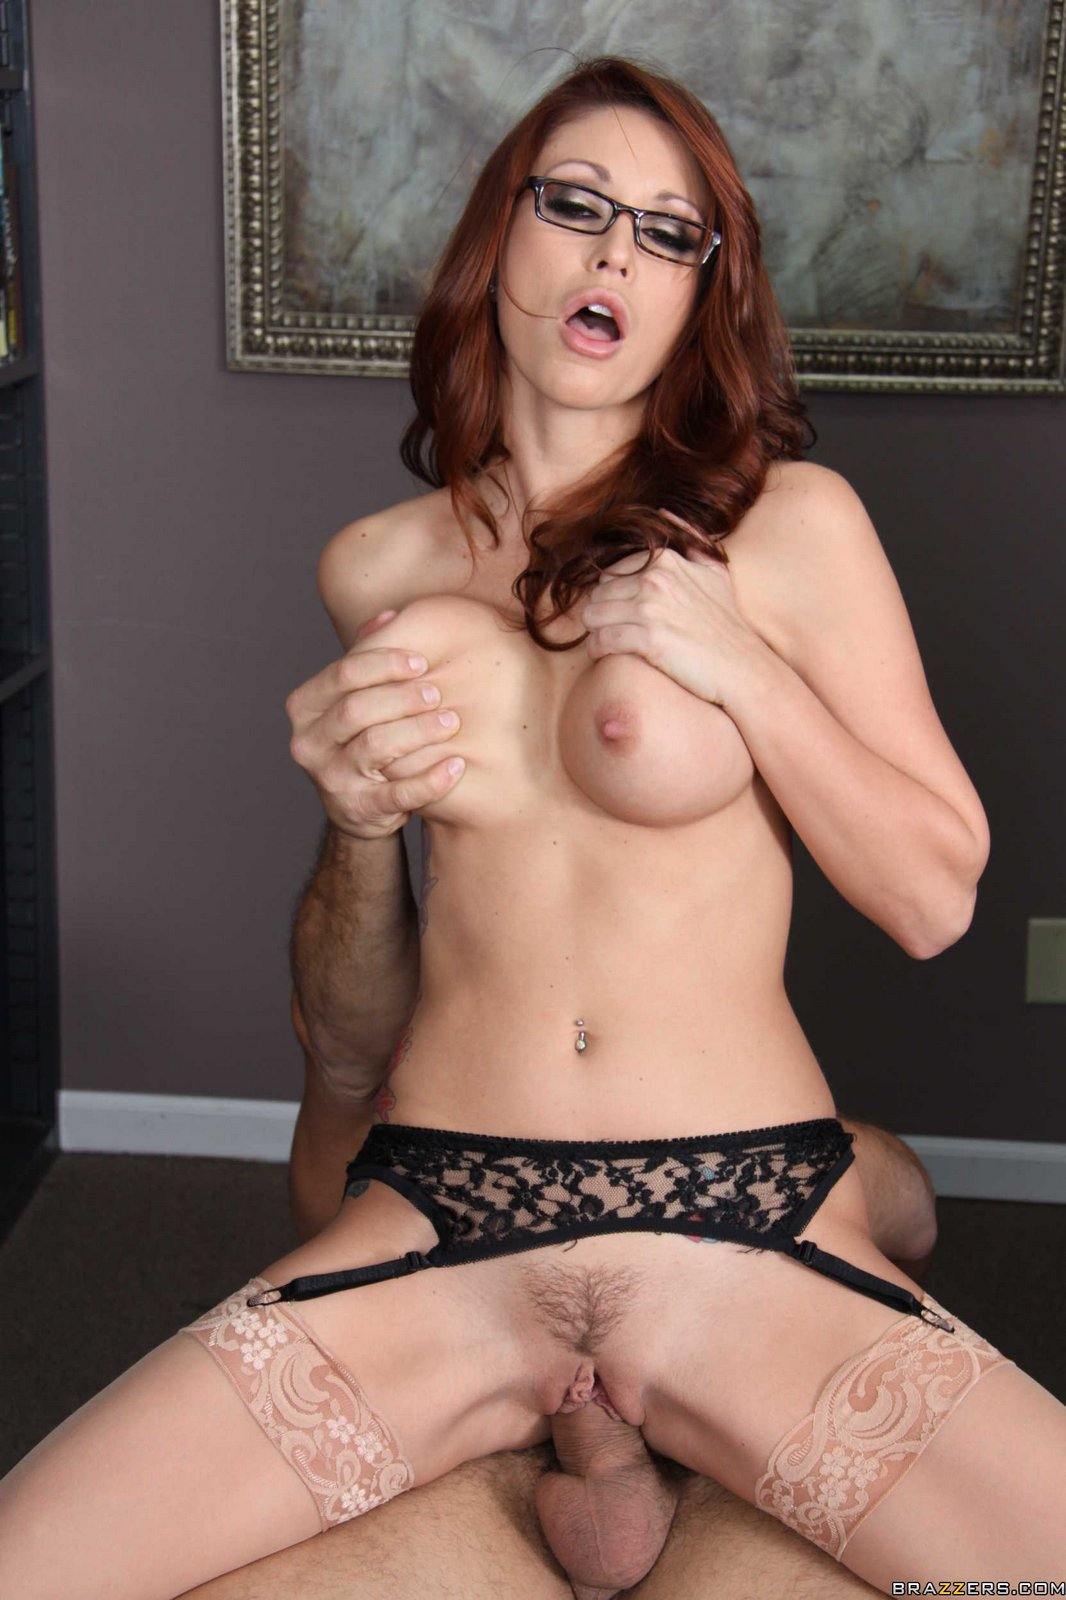 sexy lady monique alexander getting fucked hard in the